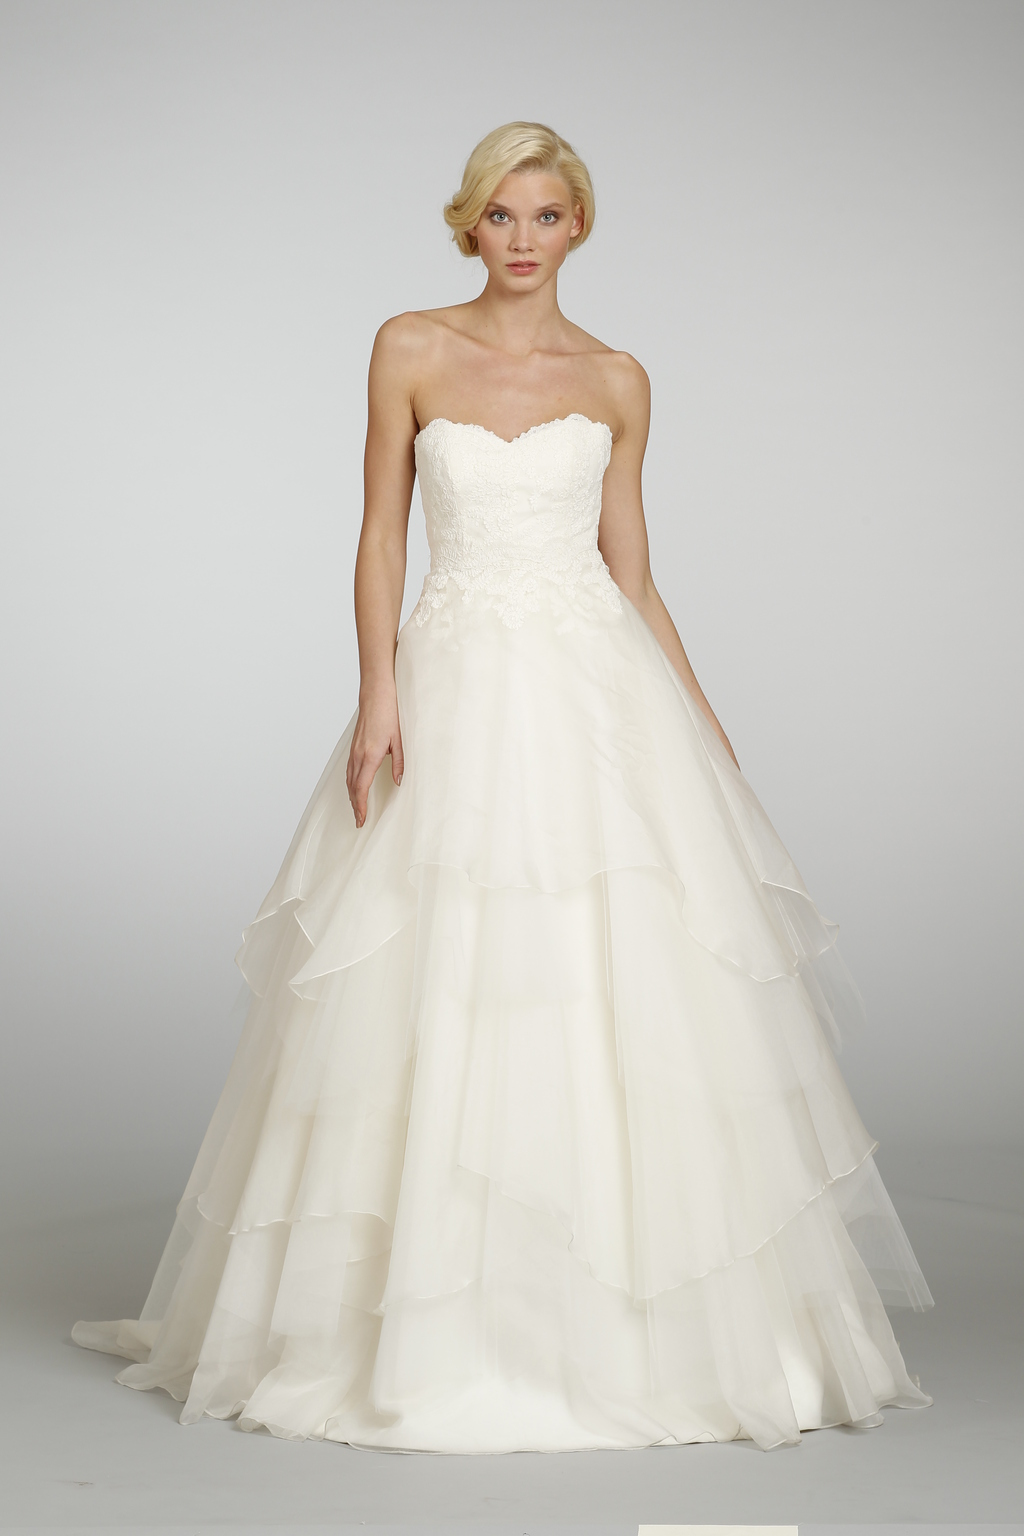 Spring 2013 wedding dress hayley paige bridal gowns 6309 d for Hayley paige wedding dress